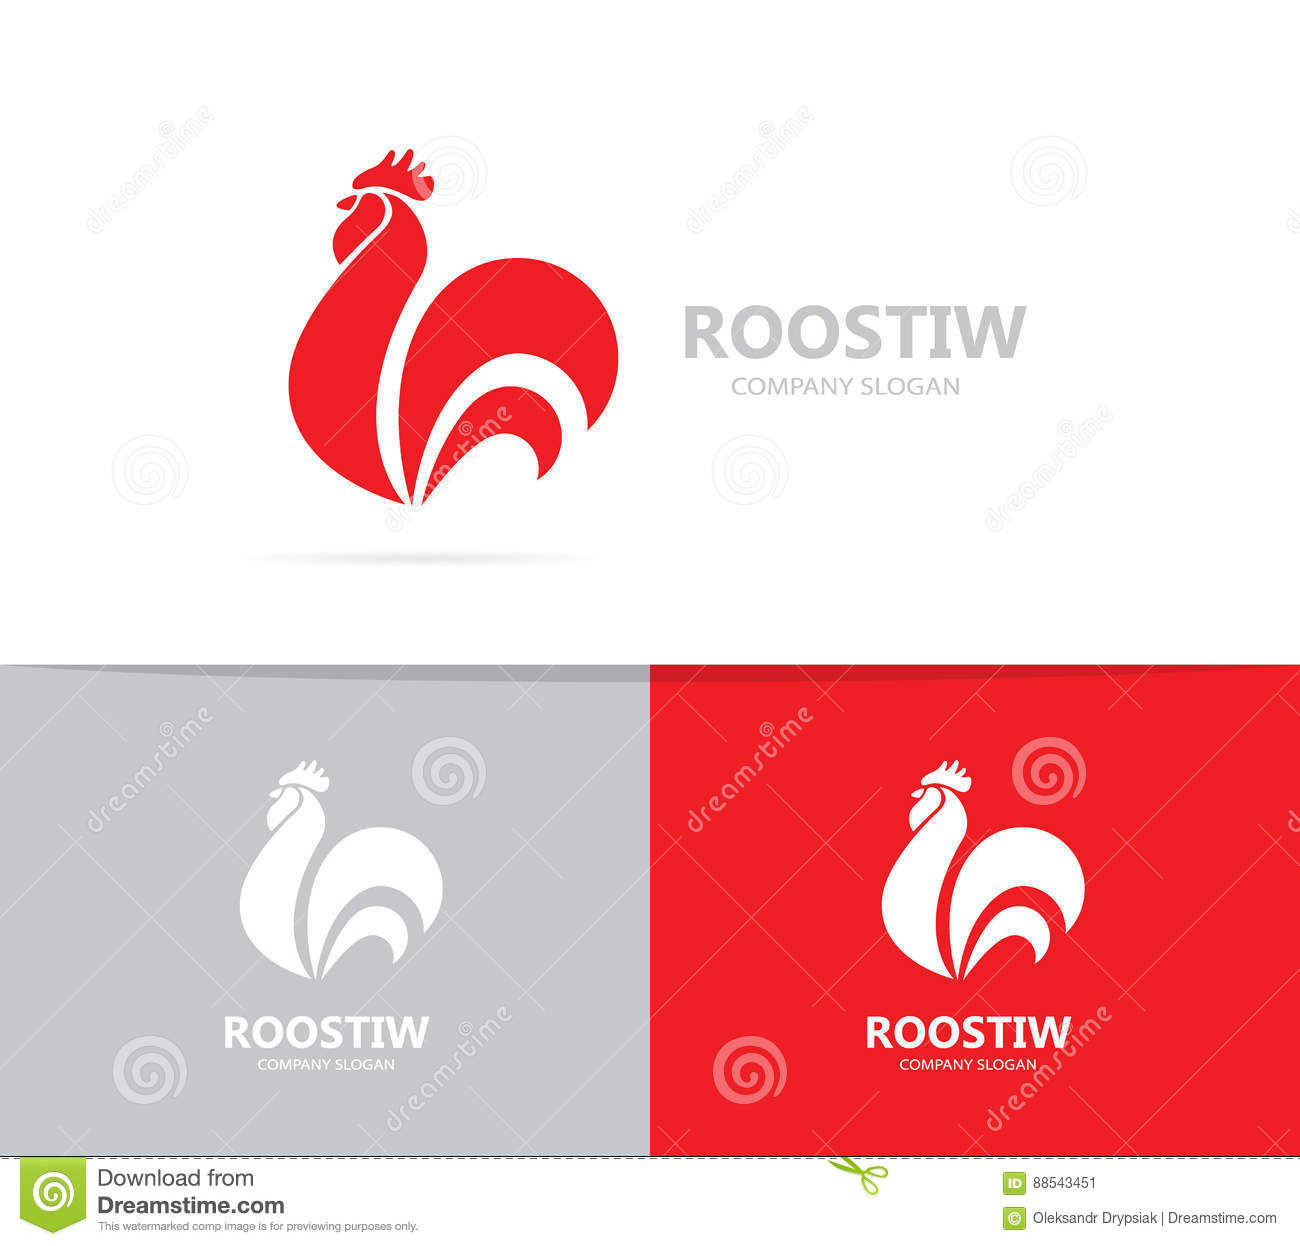 Vector Of Red Fire Rooster And Logo Combination. Unique Bird And ...